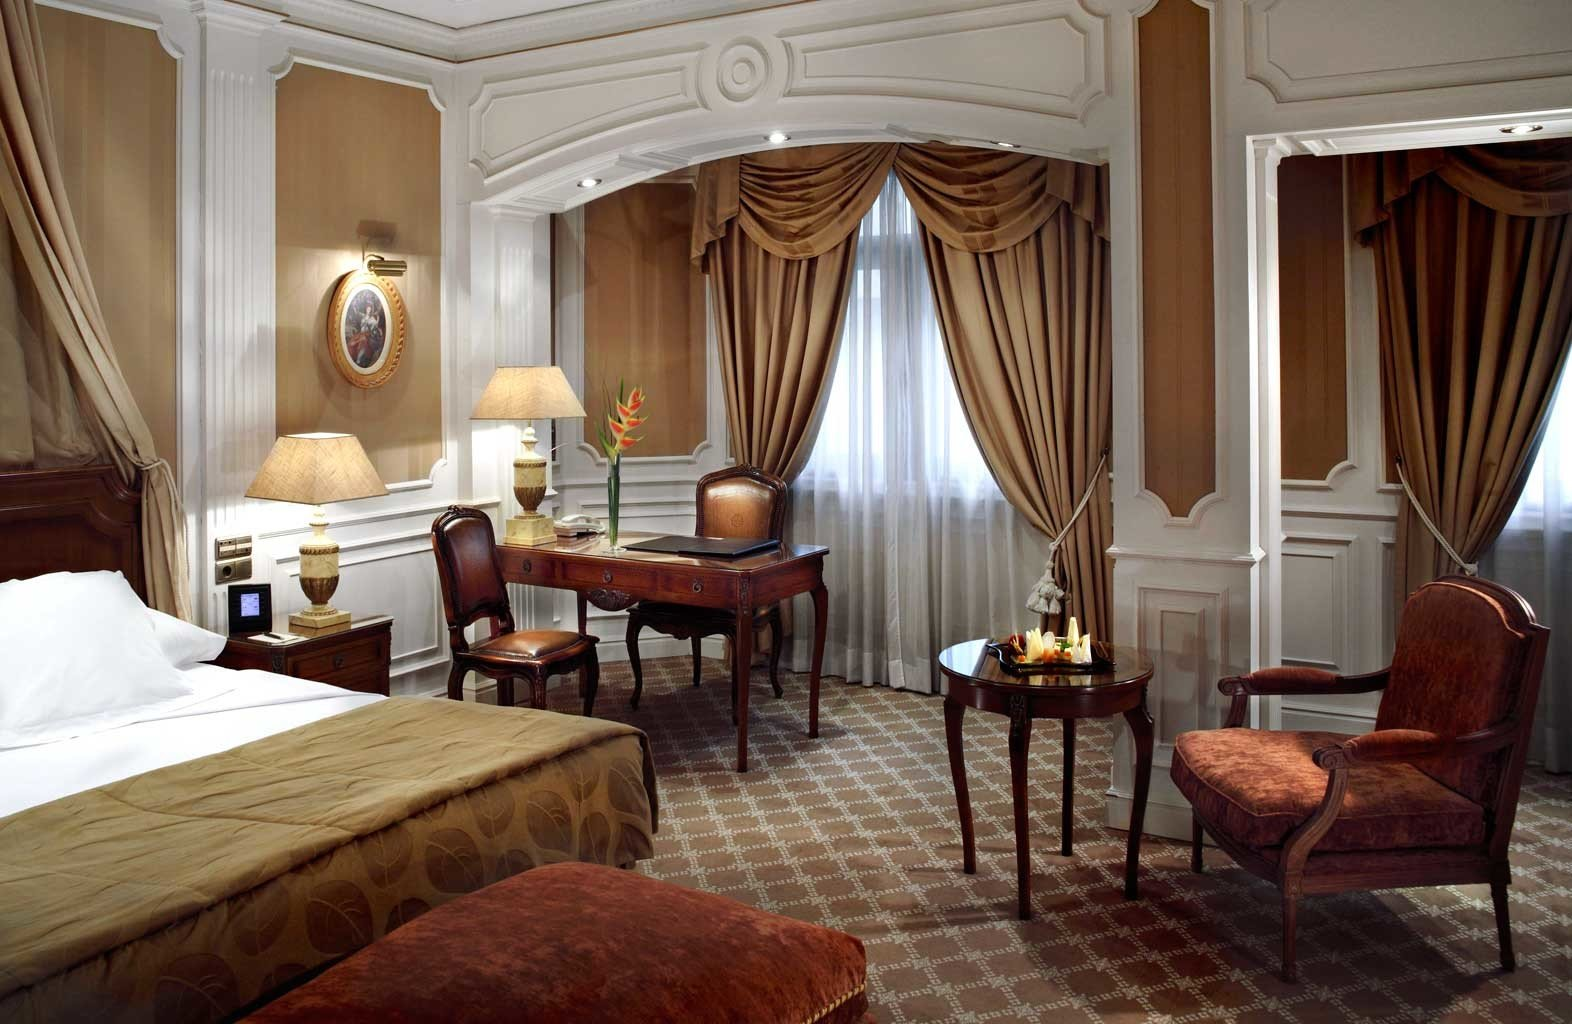 Bedroom City Classic Elegant Historic chair property Suite living room mansion